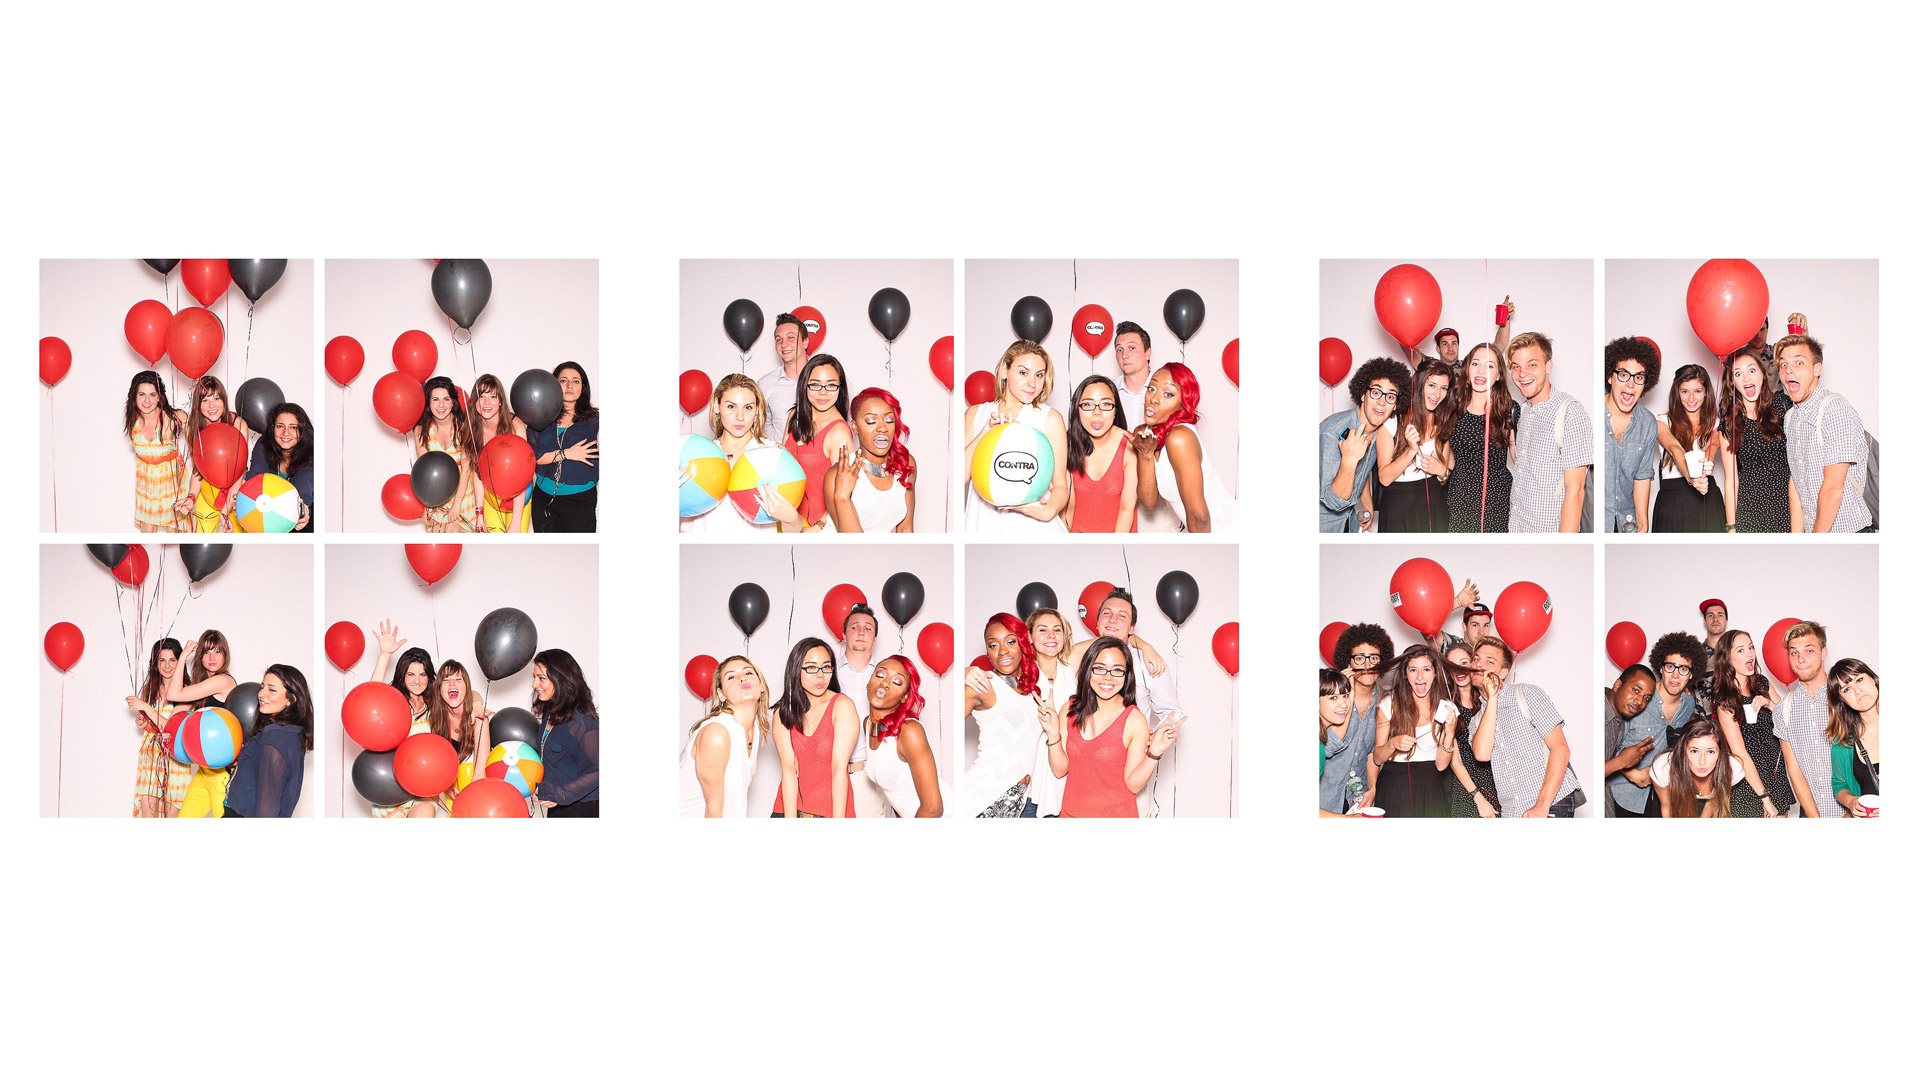 PARTIES ARE MORE FUN WITH PRIME BOOTH